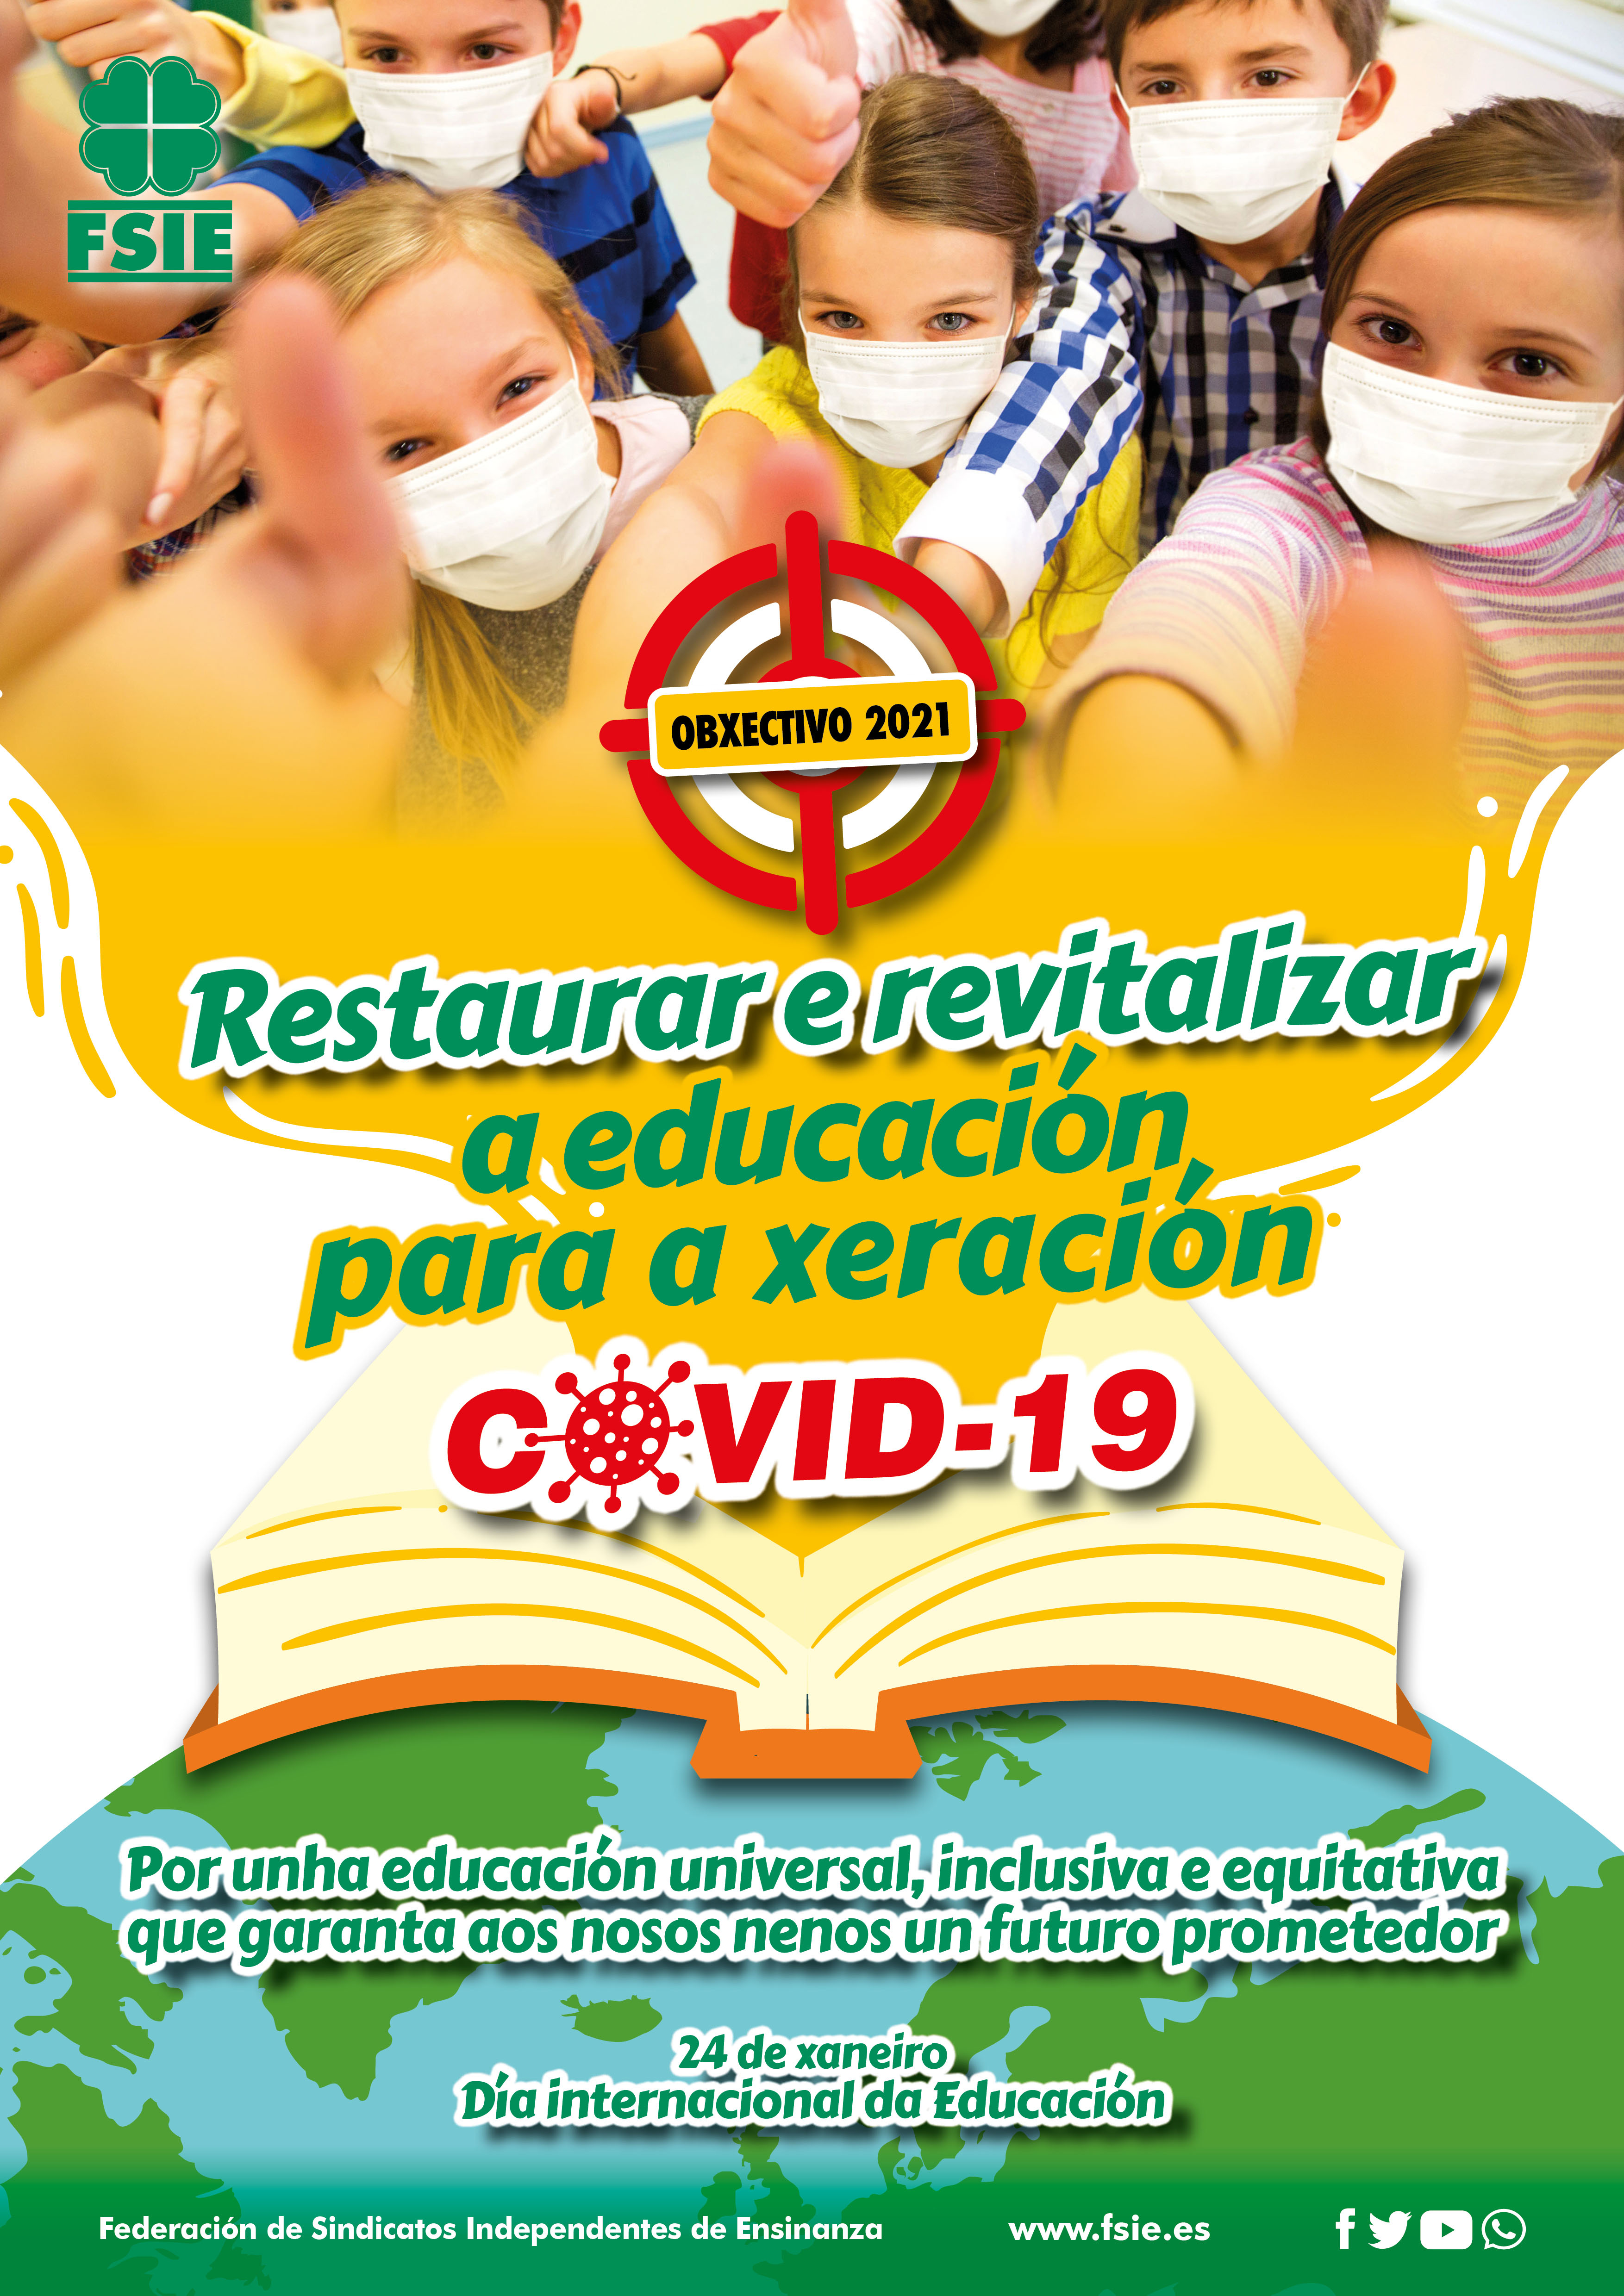 Cartel A3 Dia Internacional Educa 24 01 2021 Gallego